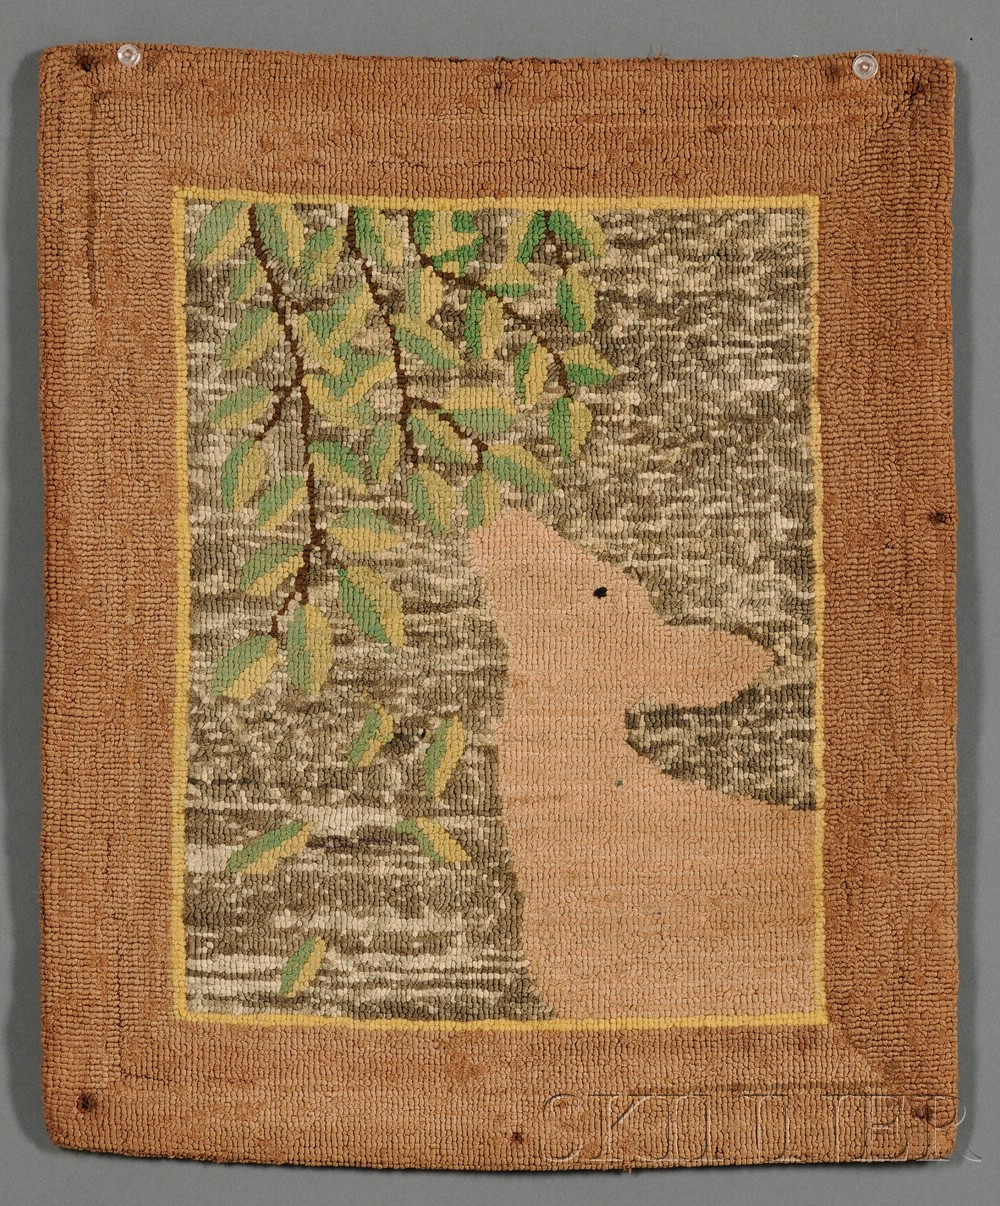 Grenfell Pictorial Hooked Mat with Deer and Leaves